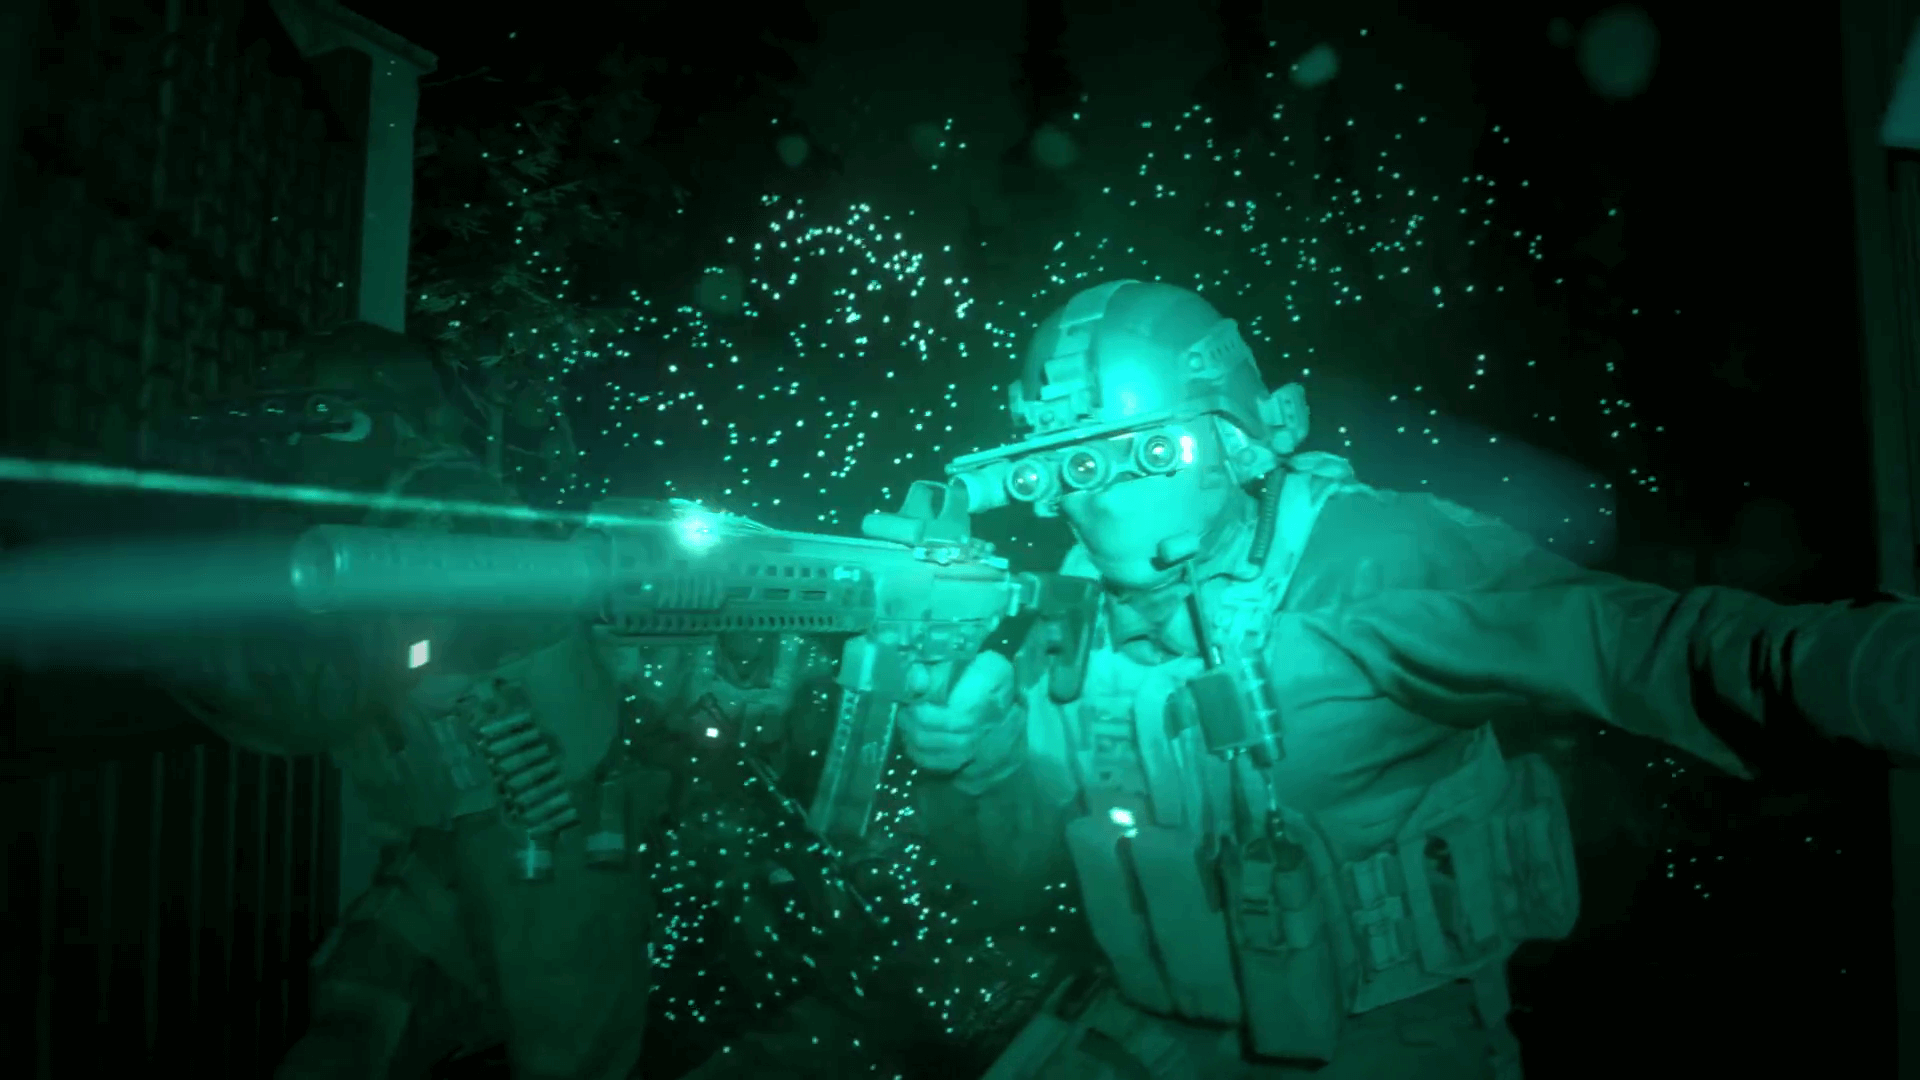 Modern warfare night vision